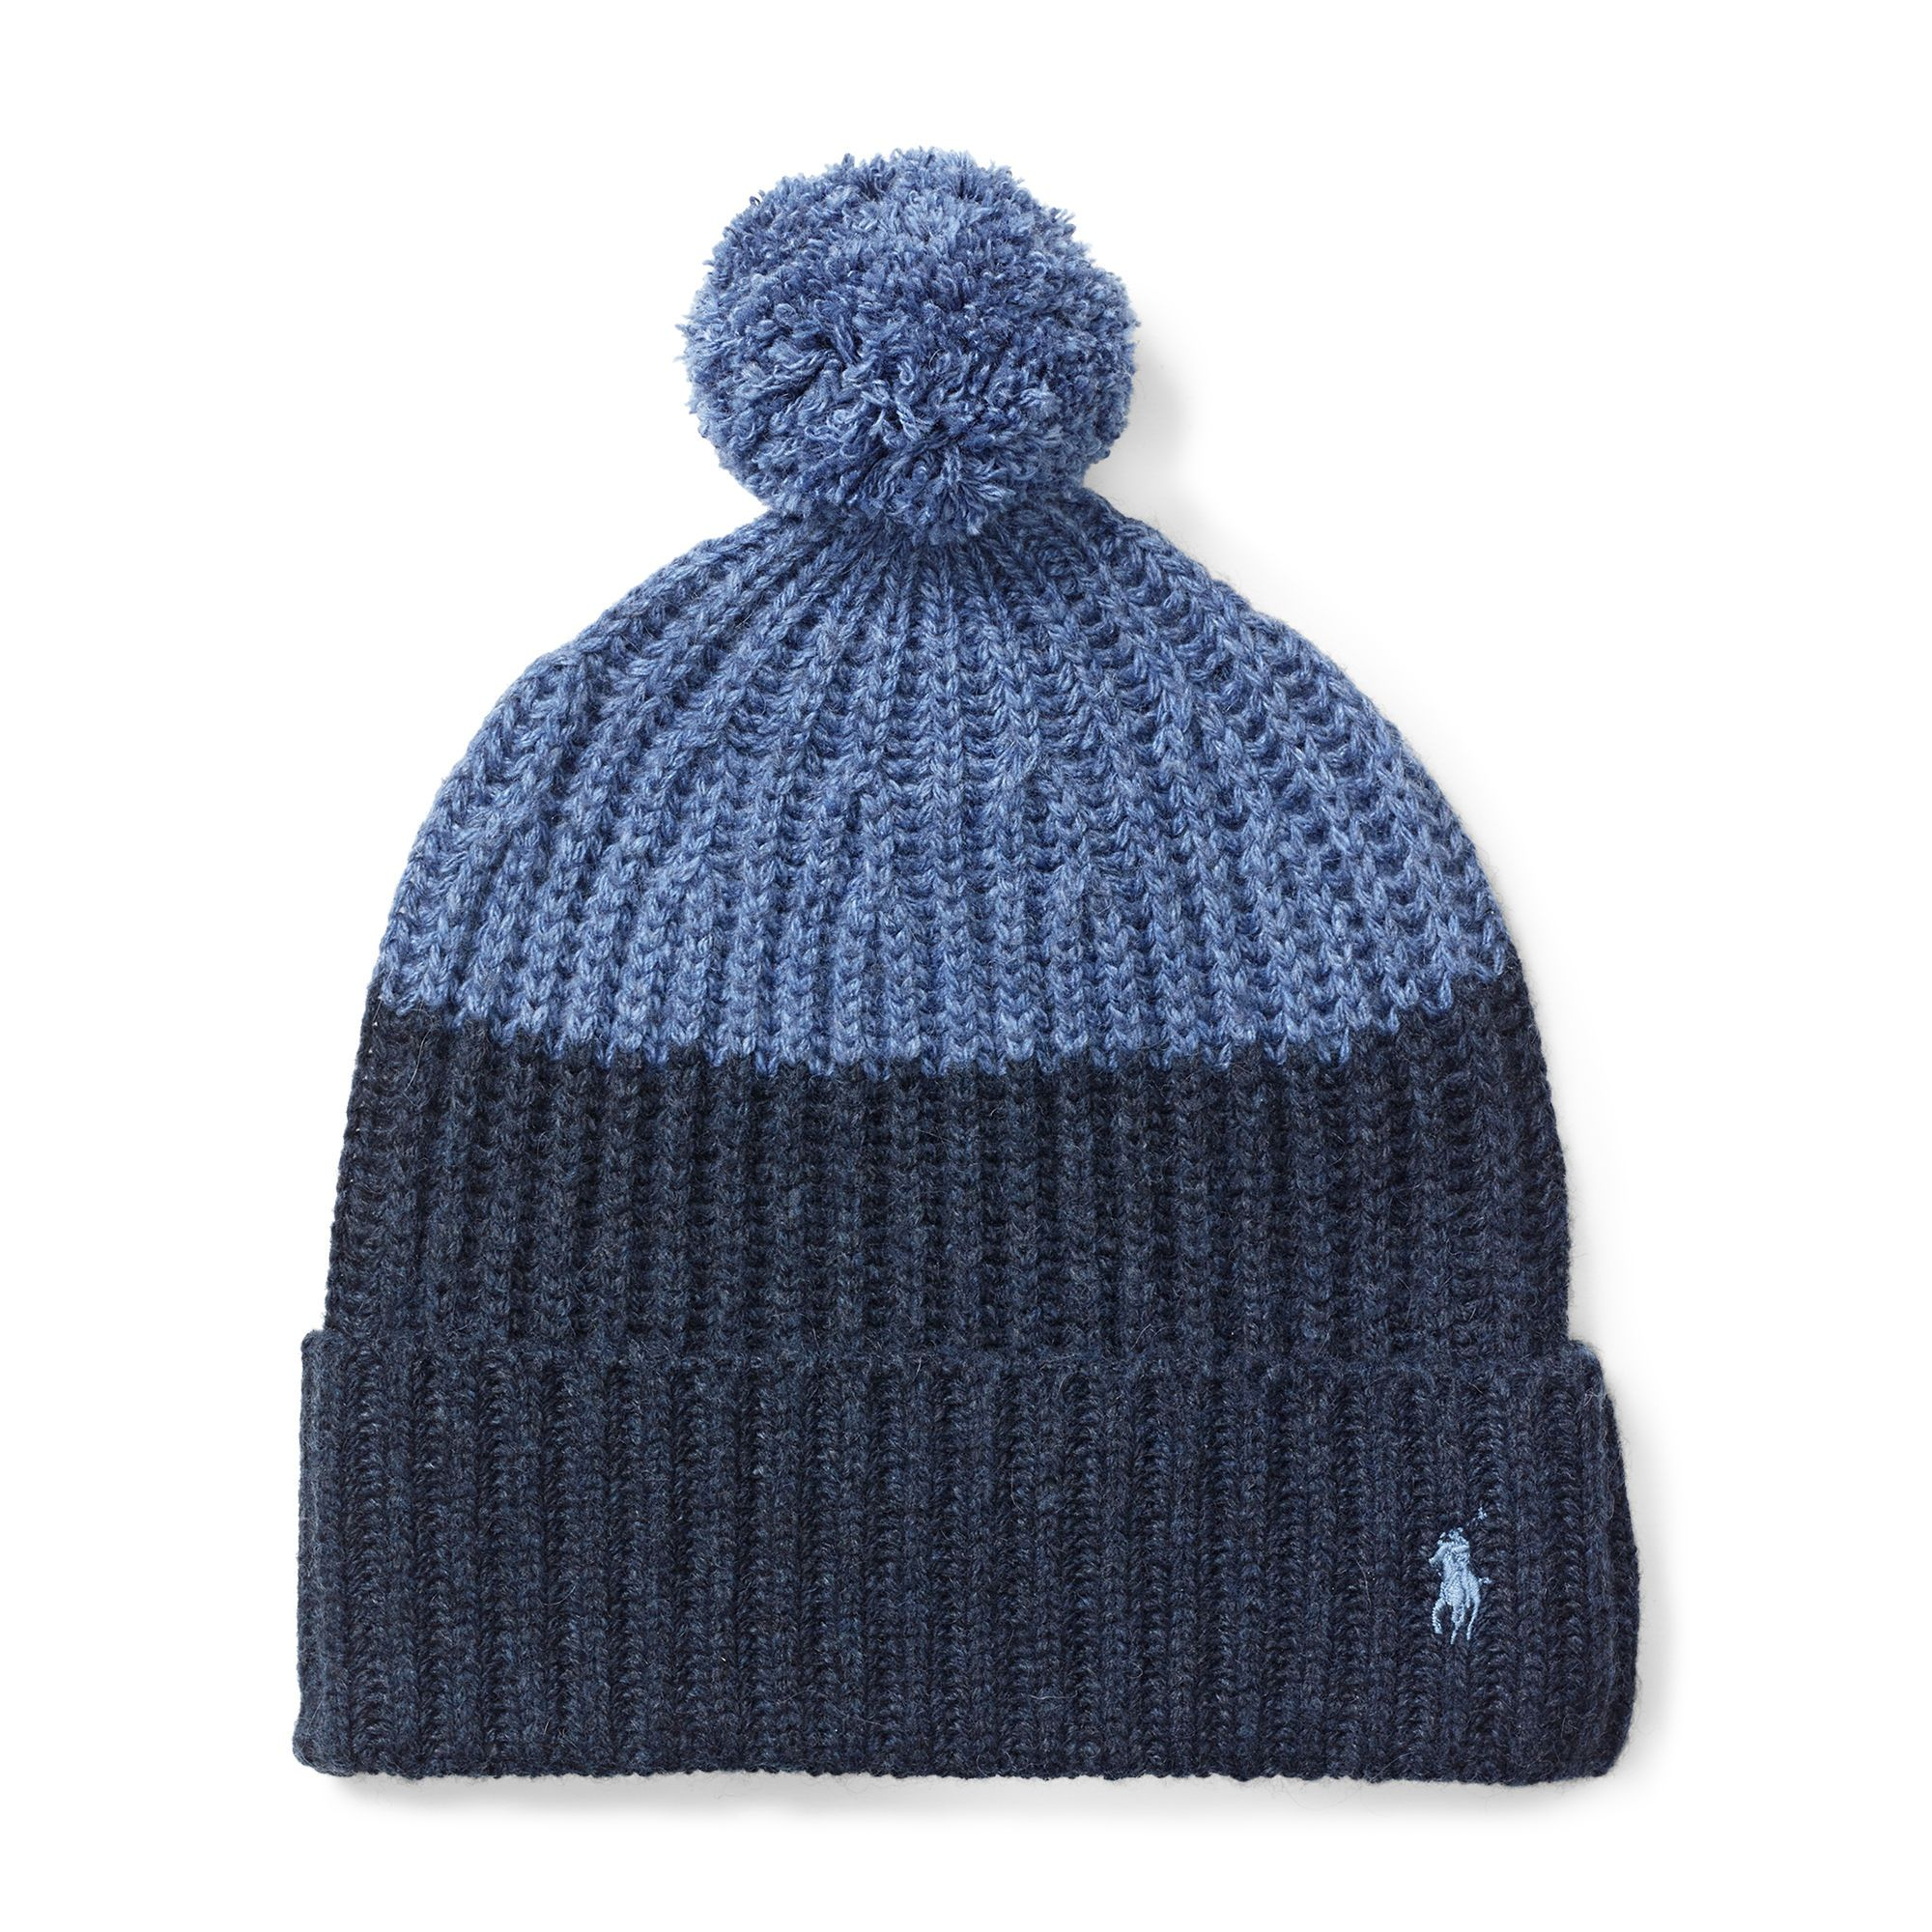 "<p><strong data-redactor-tag=""strong"" data-verified=""redactor"">Color-Blocked Pom-Pom Knit Hat, £69</strong></p><p>Whether he's mastering the moguls or soaking in the hot tub, this chunky knit hat will keep him warm and toasty.<span class=""redactor-invisible-space"" data-verified=""redactor"" data-redactor-tag=""span"" data-redactor-class=""redactor-invisible-space""></span></p>"